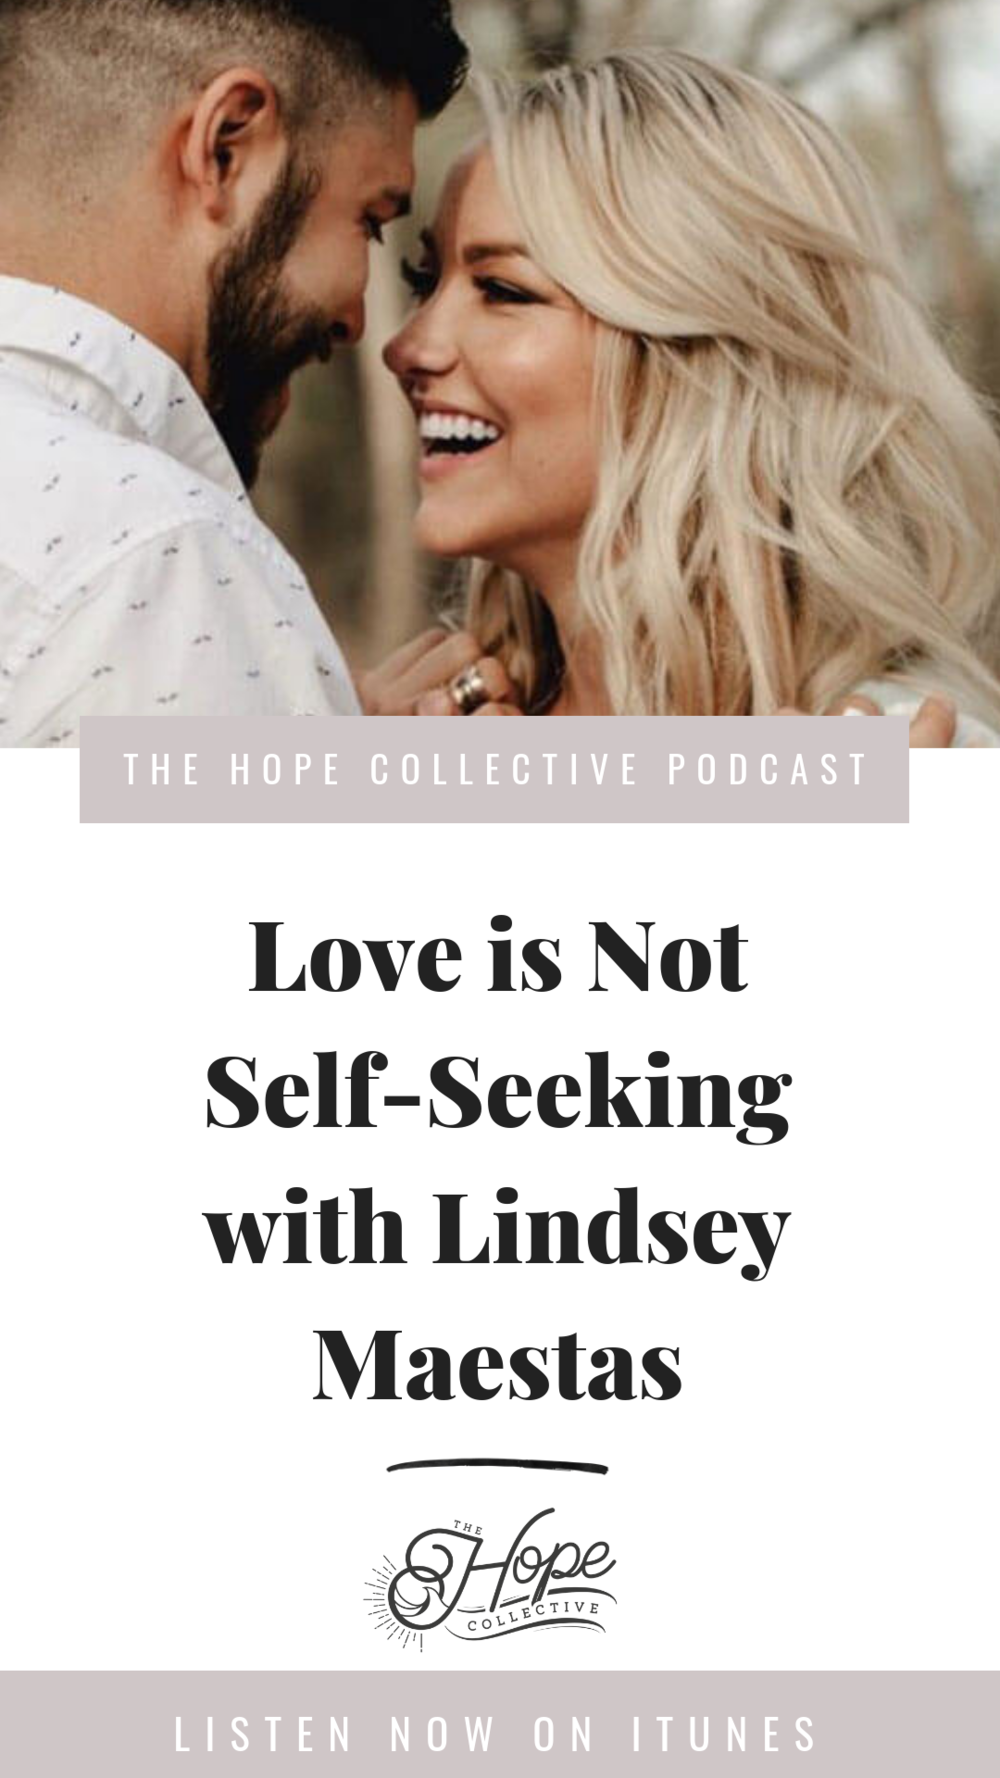 Lindsey Maestas - The Hope Collective Podcast